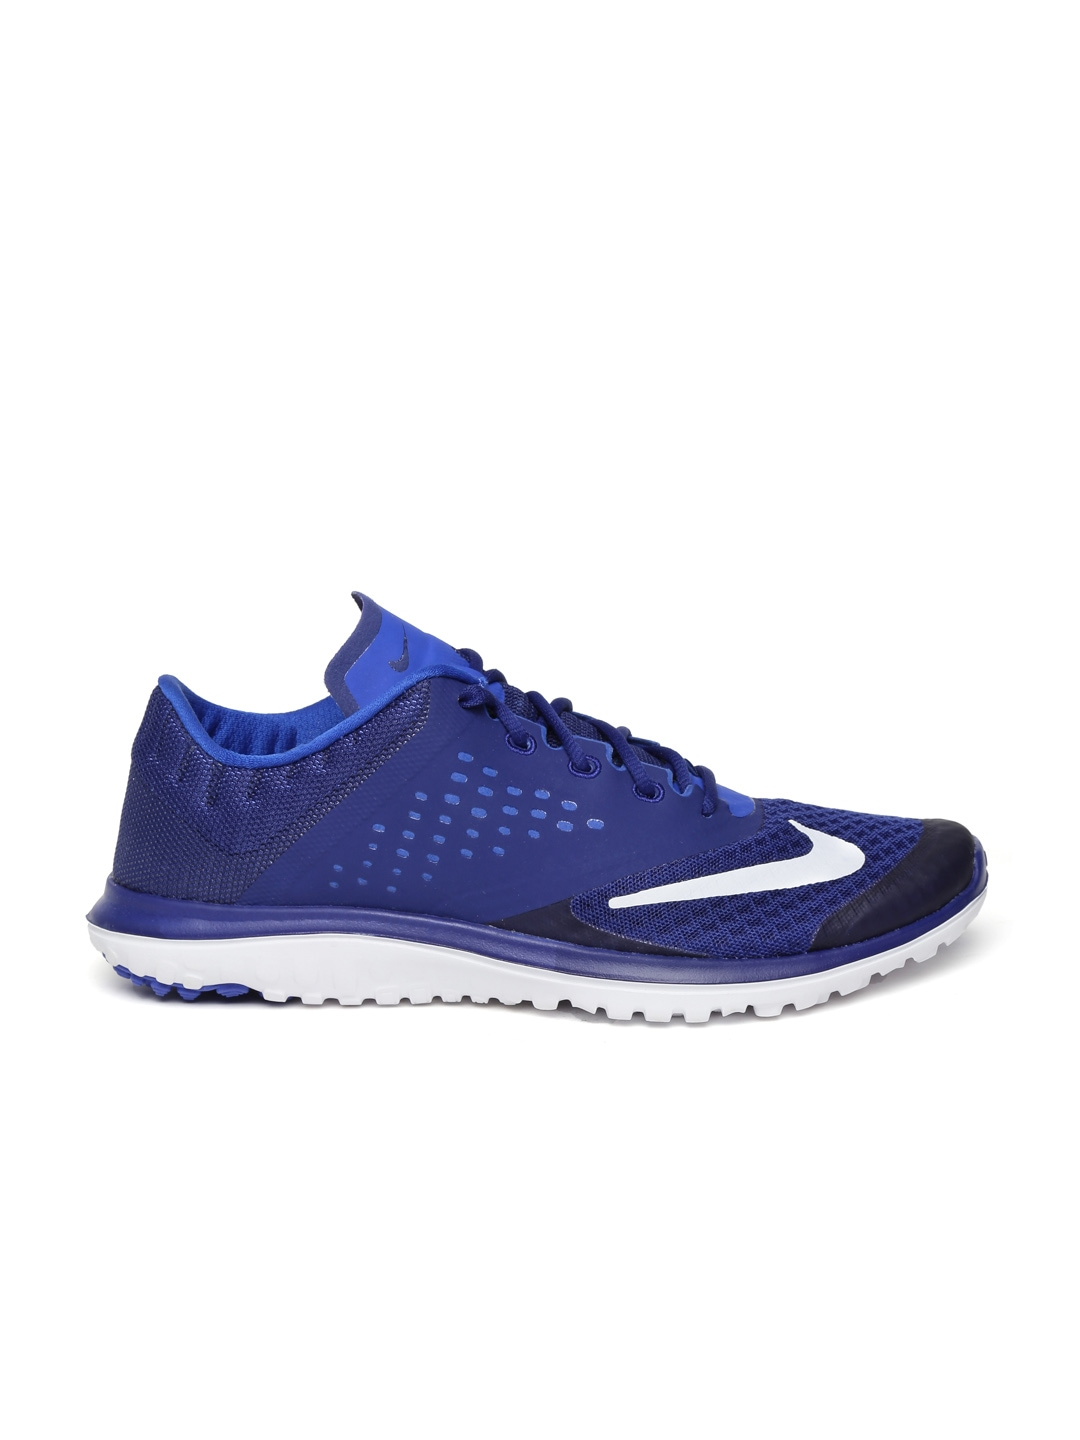 Nike Shoes For Men Myntra